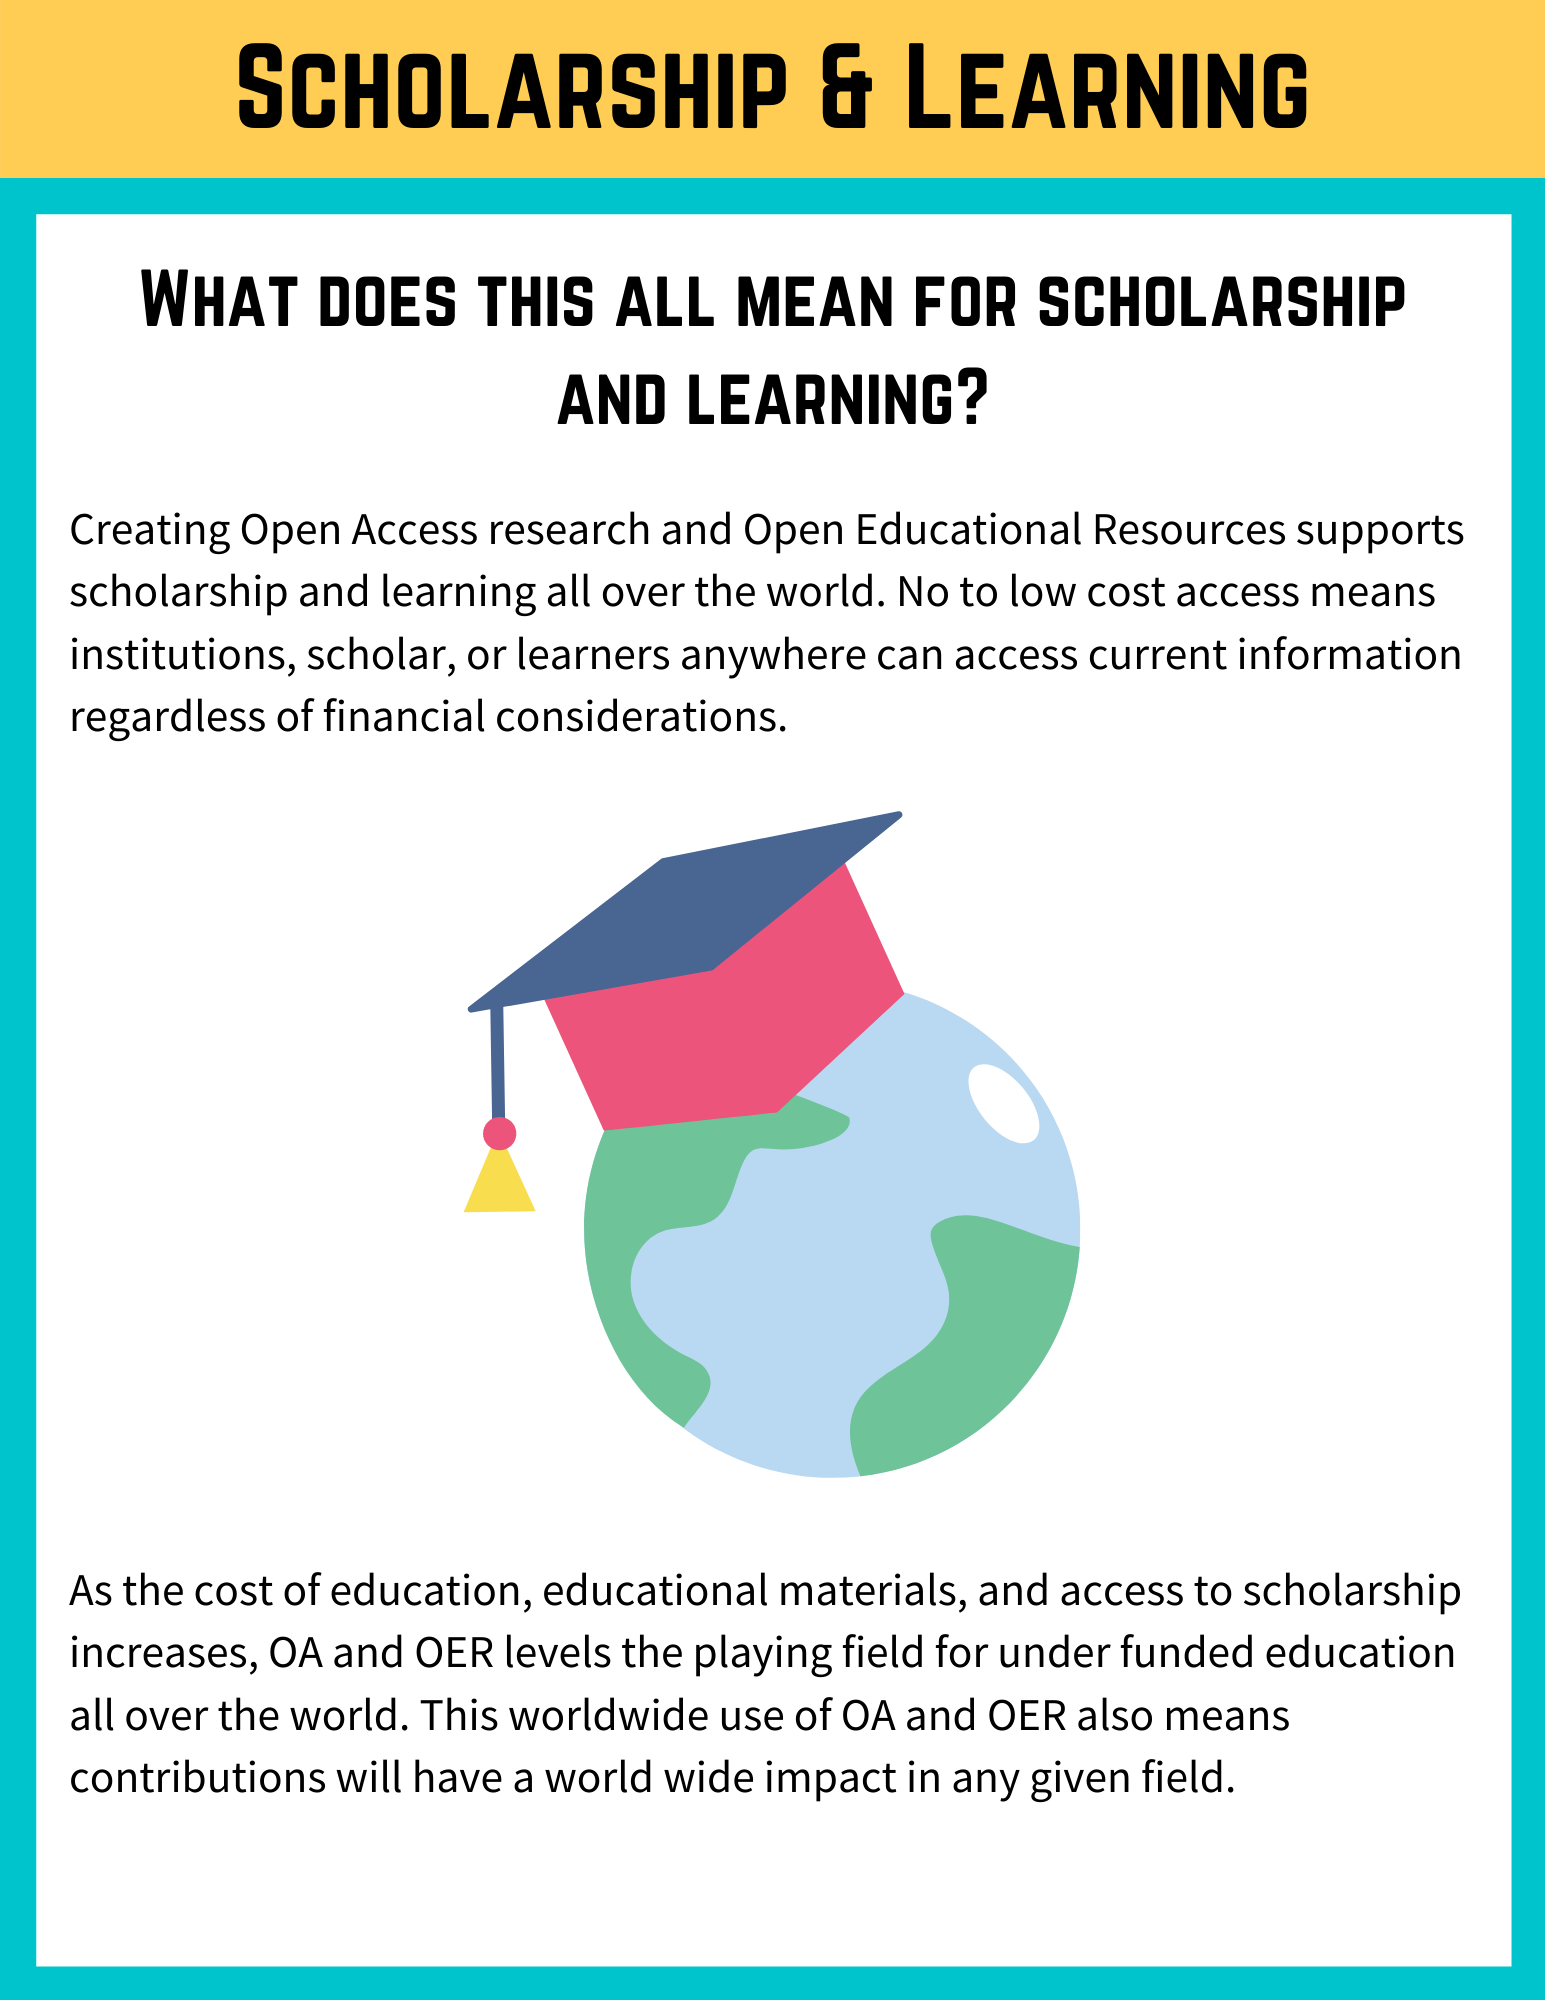 Open Access and OER page 9